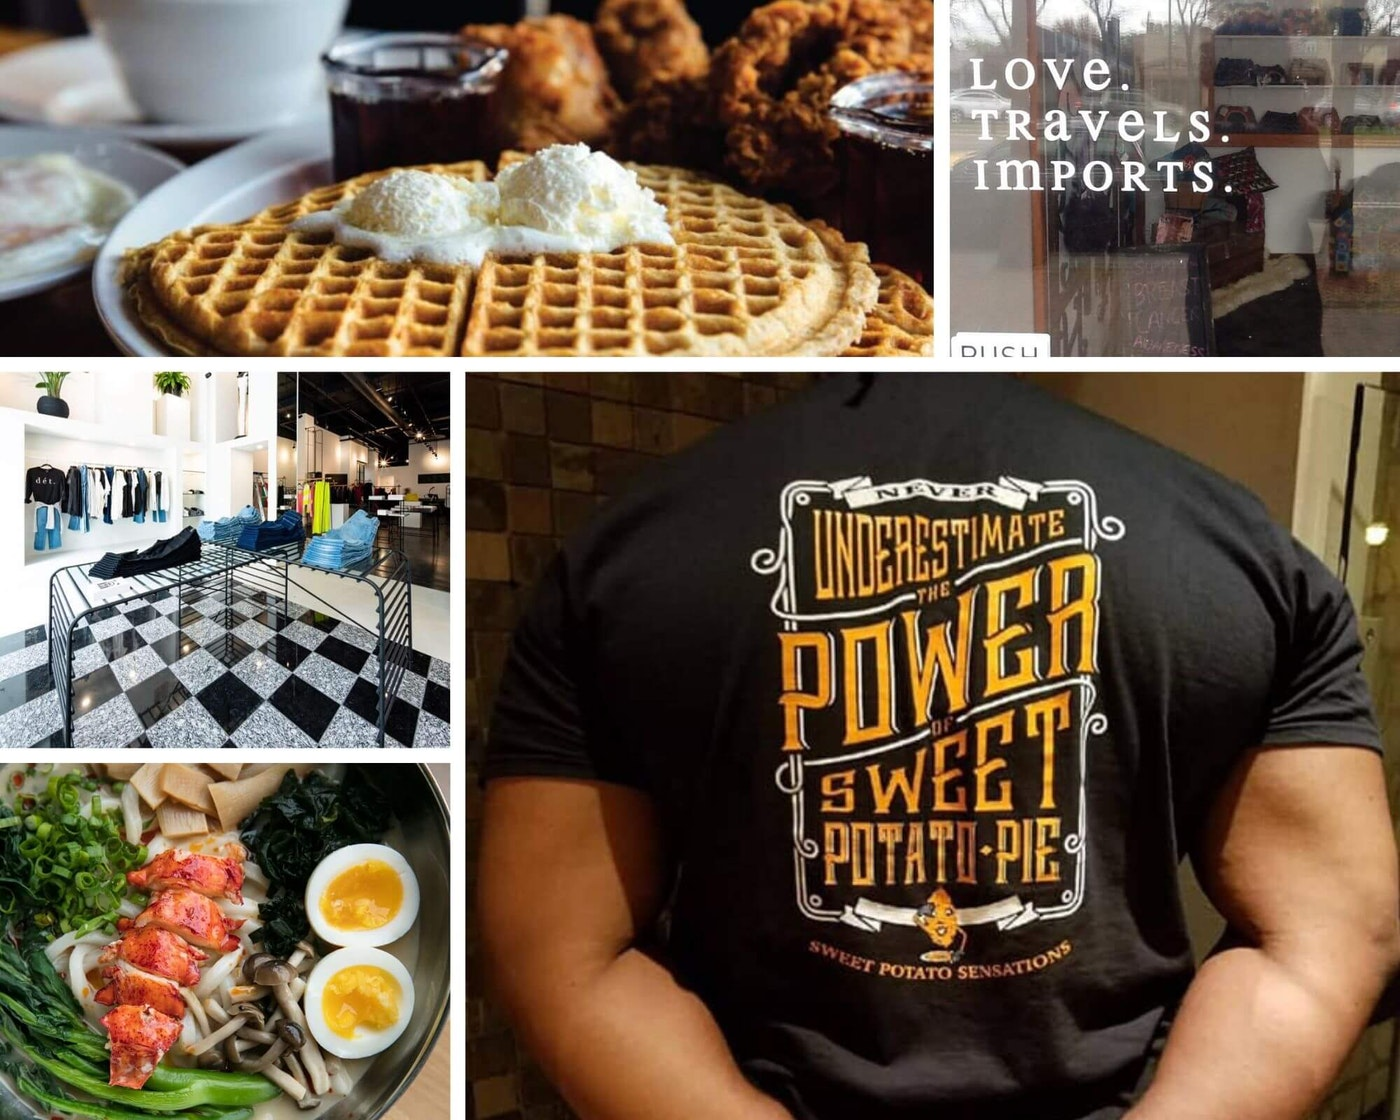 Clockwise from top left: Kuzzo's Chicken & Waffles; Love. Travels. Imports.; Sweet Potato Sensations; Ima Noodles; Détroit Is The New Black. (Photos via Facebook)